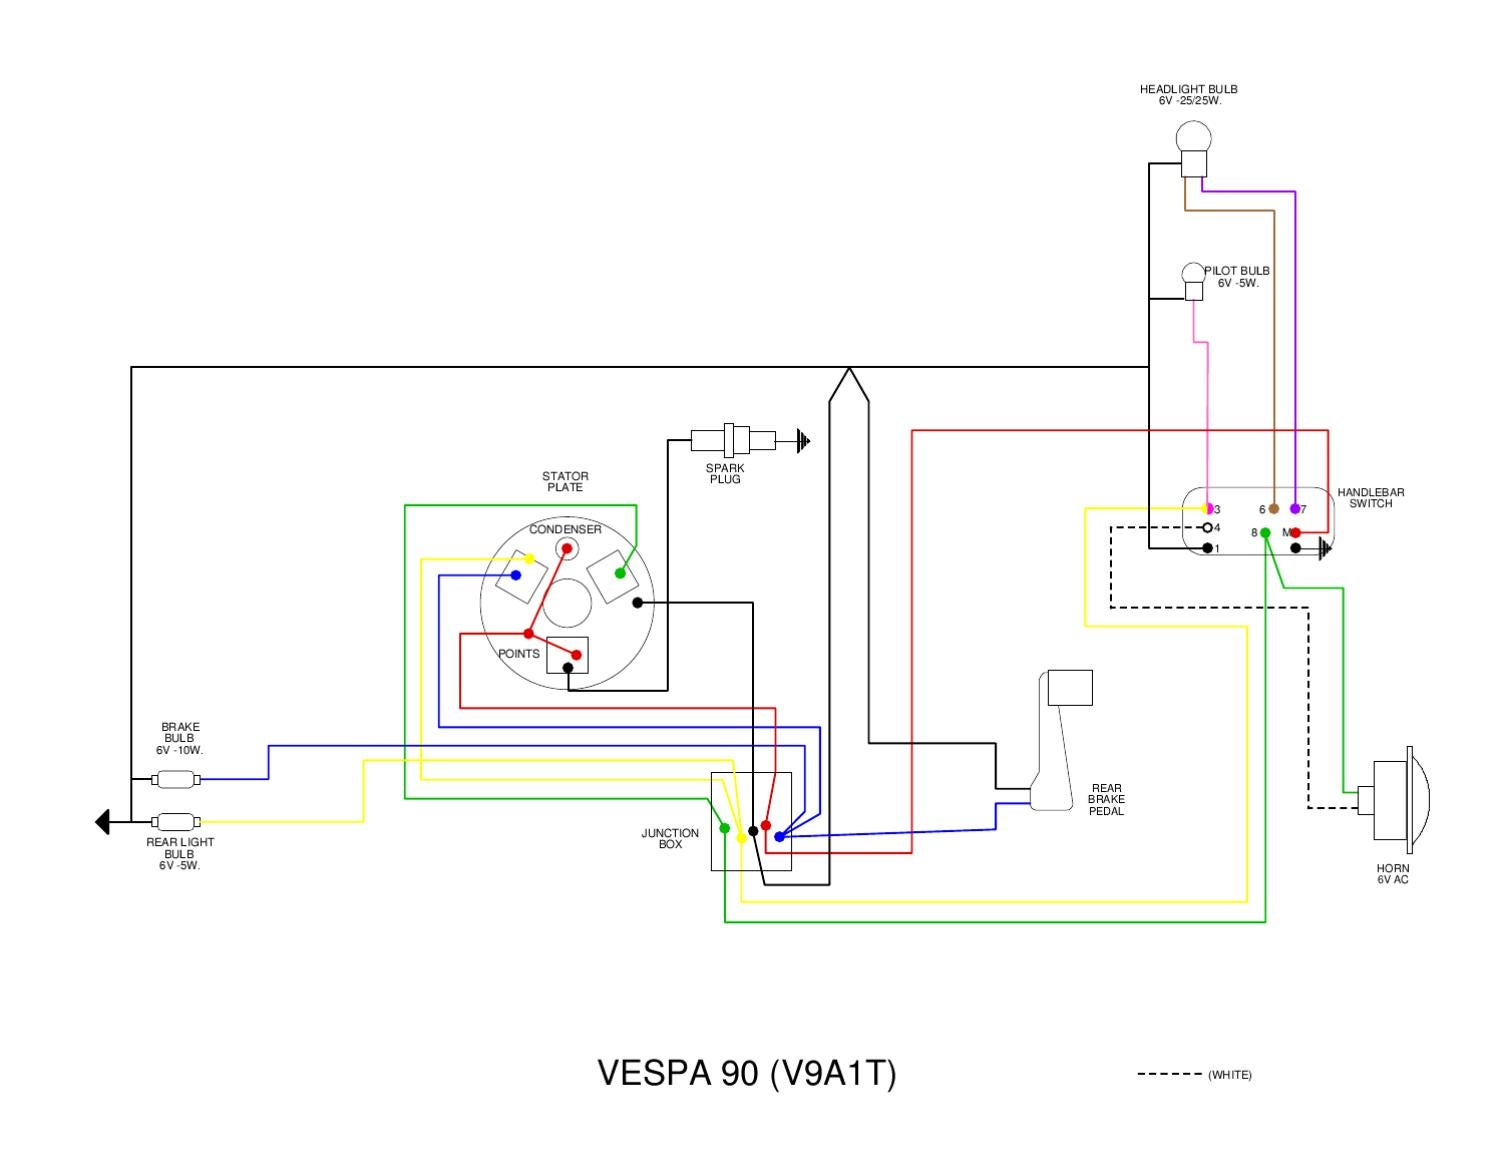 hight resolution of vespa vbb wiring diagram caprice wiring diagram vespa px 150 wiring diagram vespa